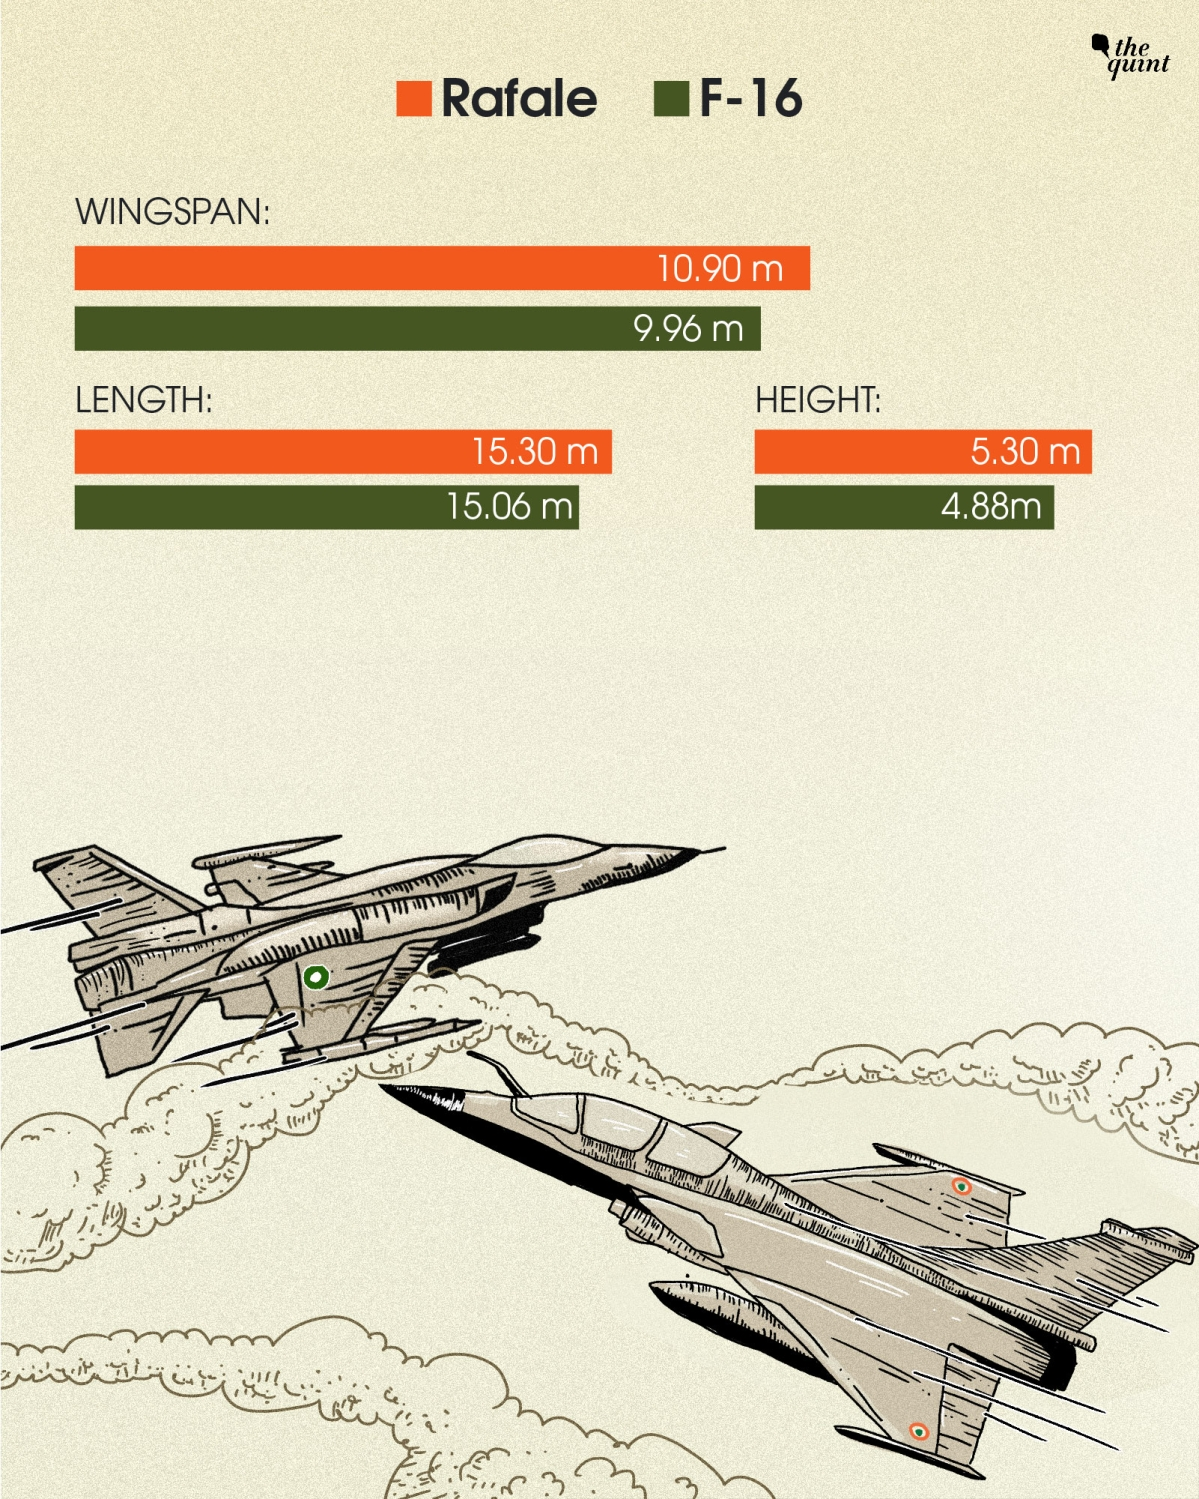 Rafale Vs F-16: Which Fighter Jet Will Win The Dogfight? | Indian